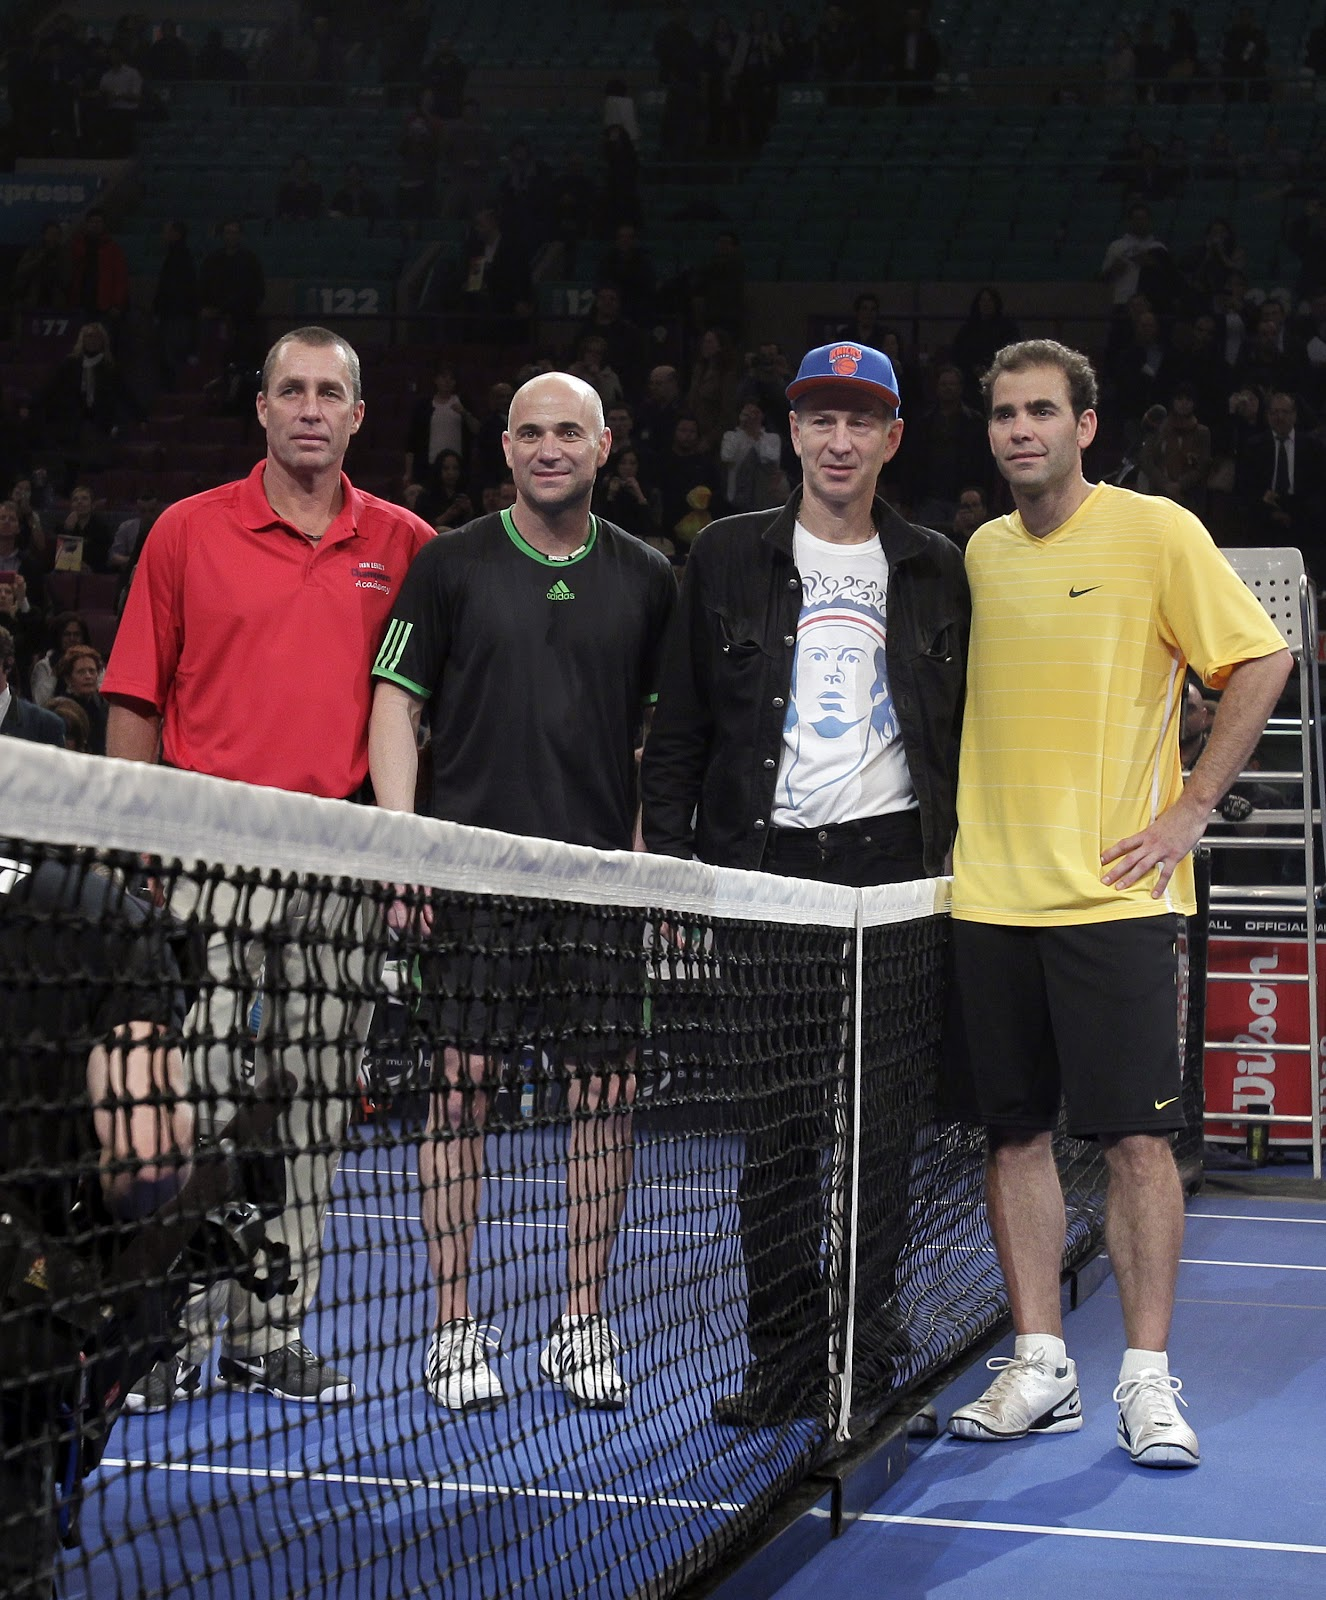 http://4.bp.blogspot.com/-P2bal4zondk/T_5KXU6a86I/AAAAAAAABKo/vJhB4qU78Fs/s1600/tennis-legends-ivan-lendl--andre-agassi--john-mcenroe-pete-sampras-at-bnp-paribas-showdown-new-york-256.jpg